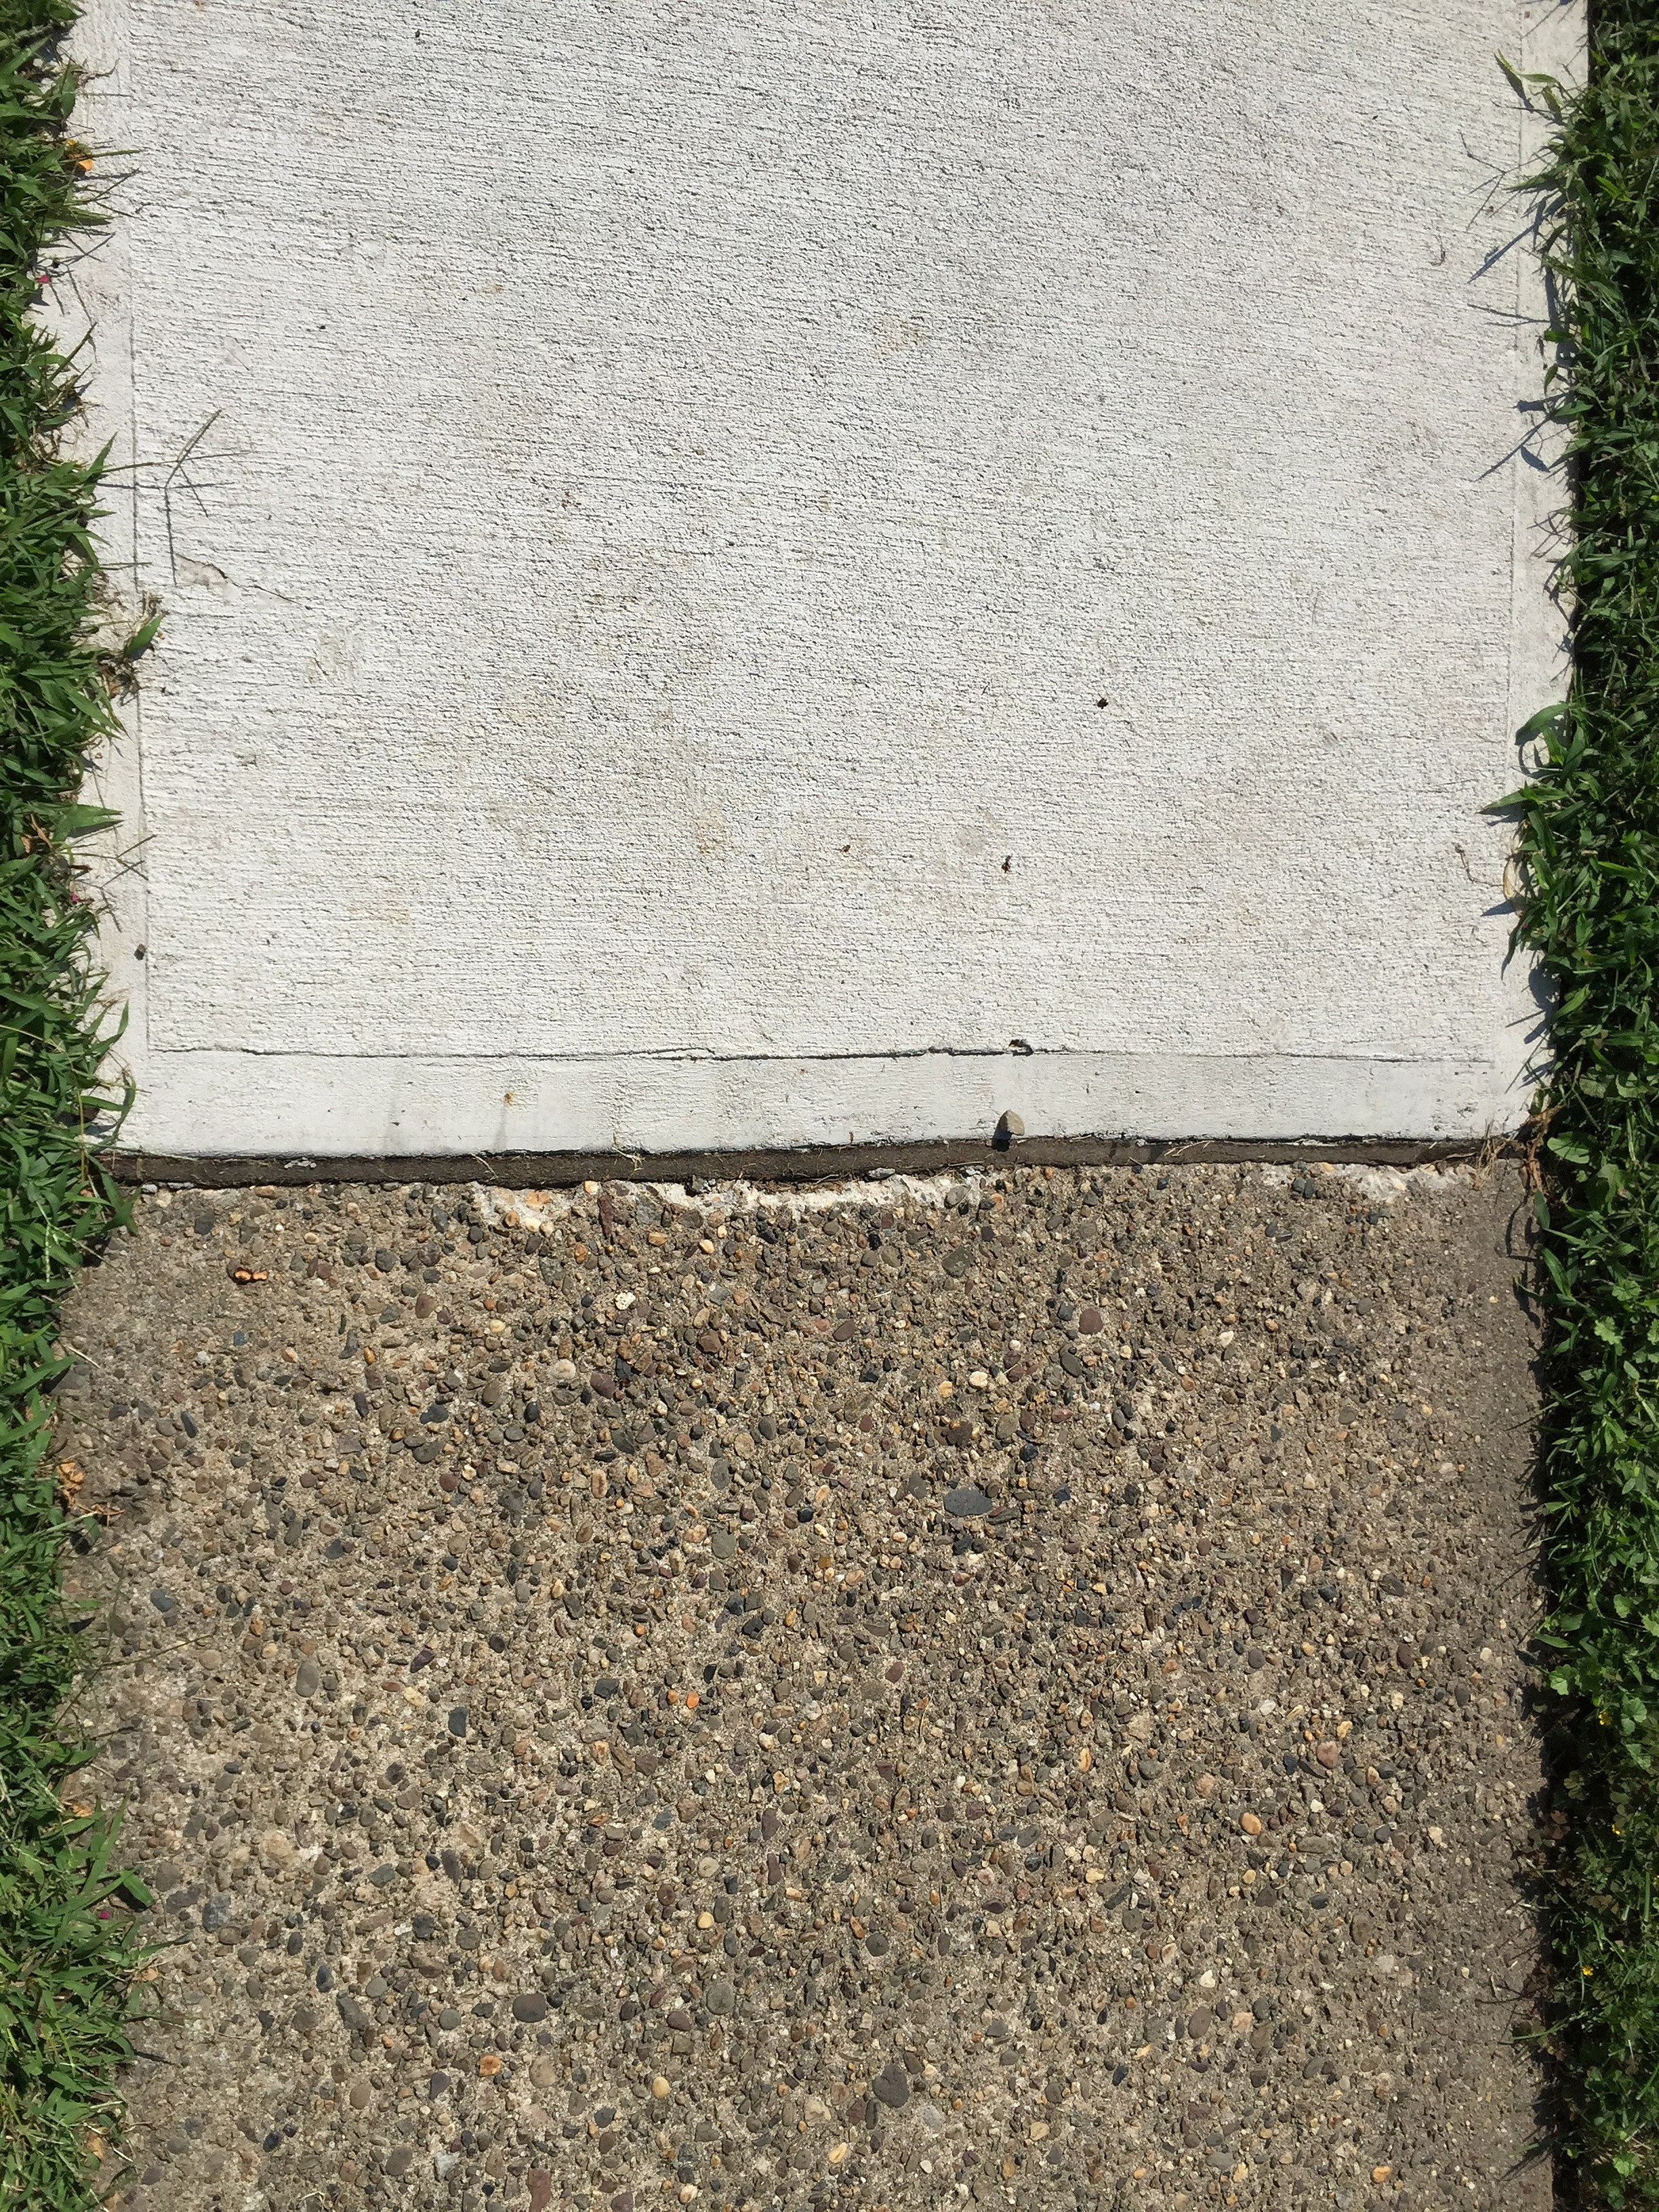 File2017 09 05 10 50 20 Very New Concrete Sidewalk Next To Old Along Theresa Street In Ewing Township Mercer County Jersey